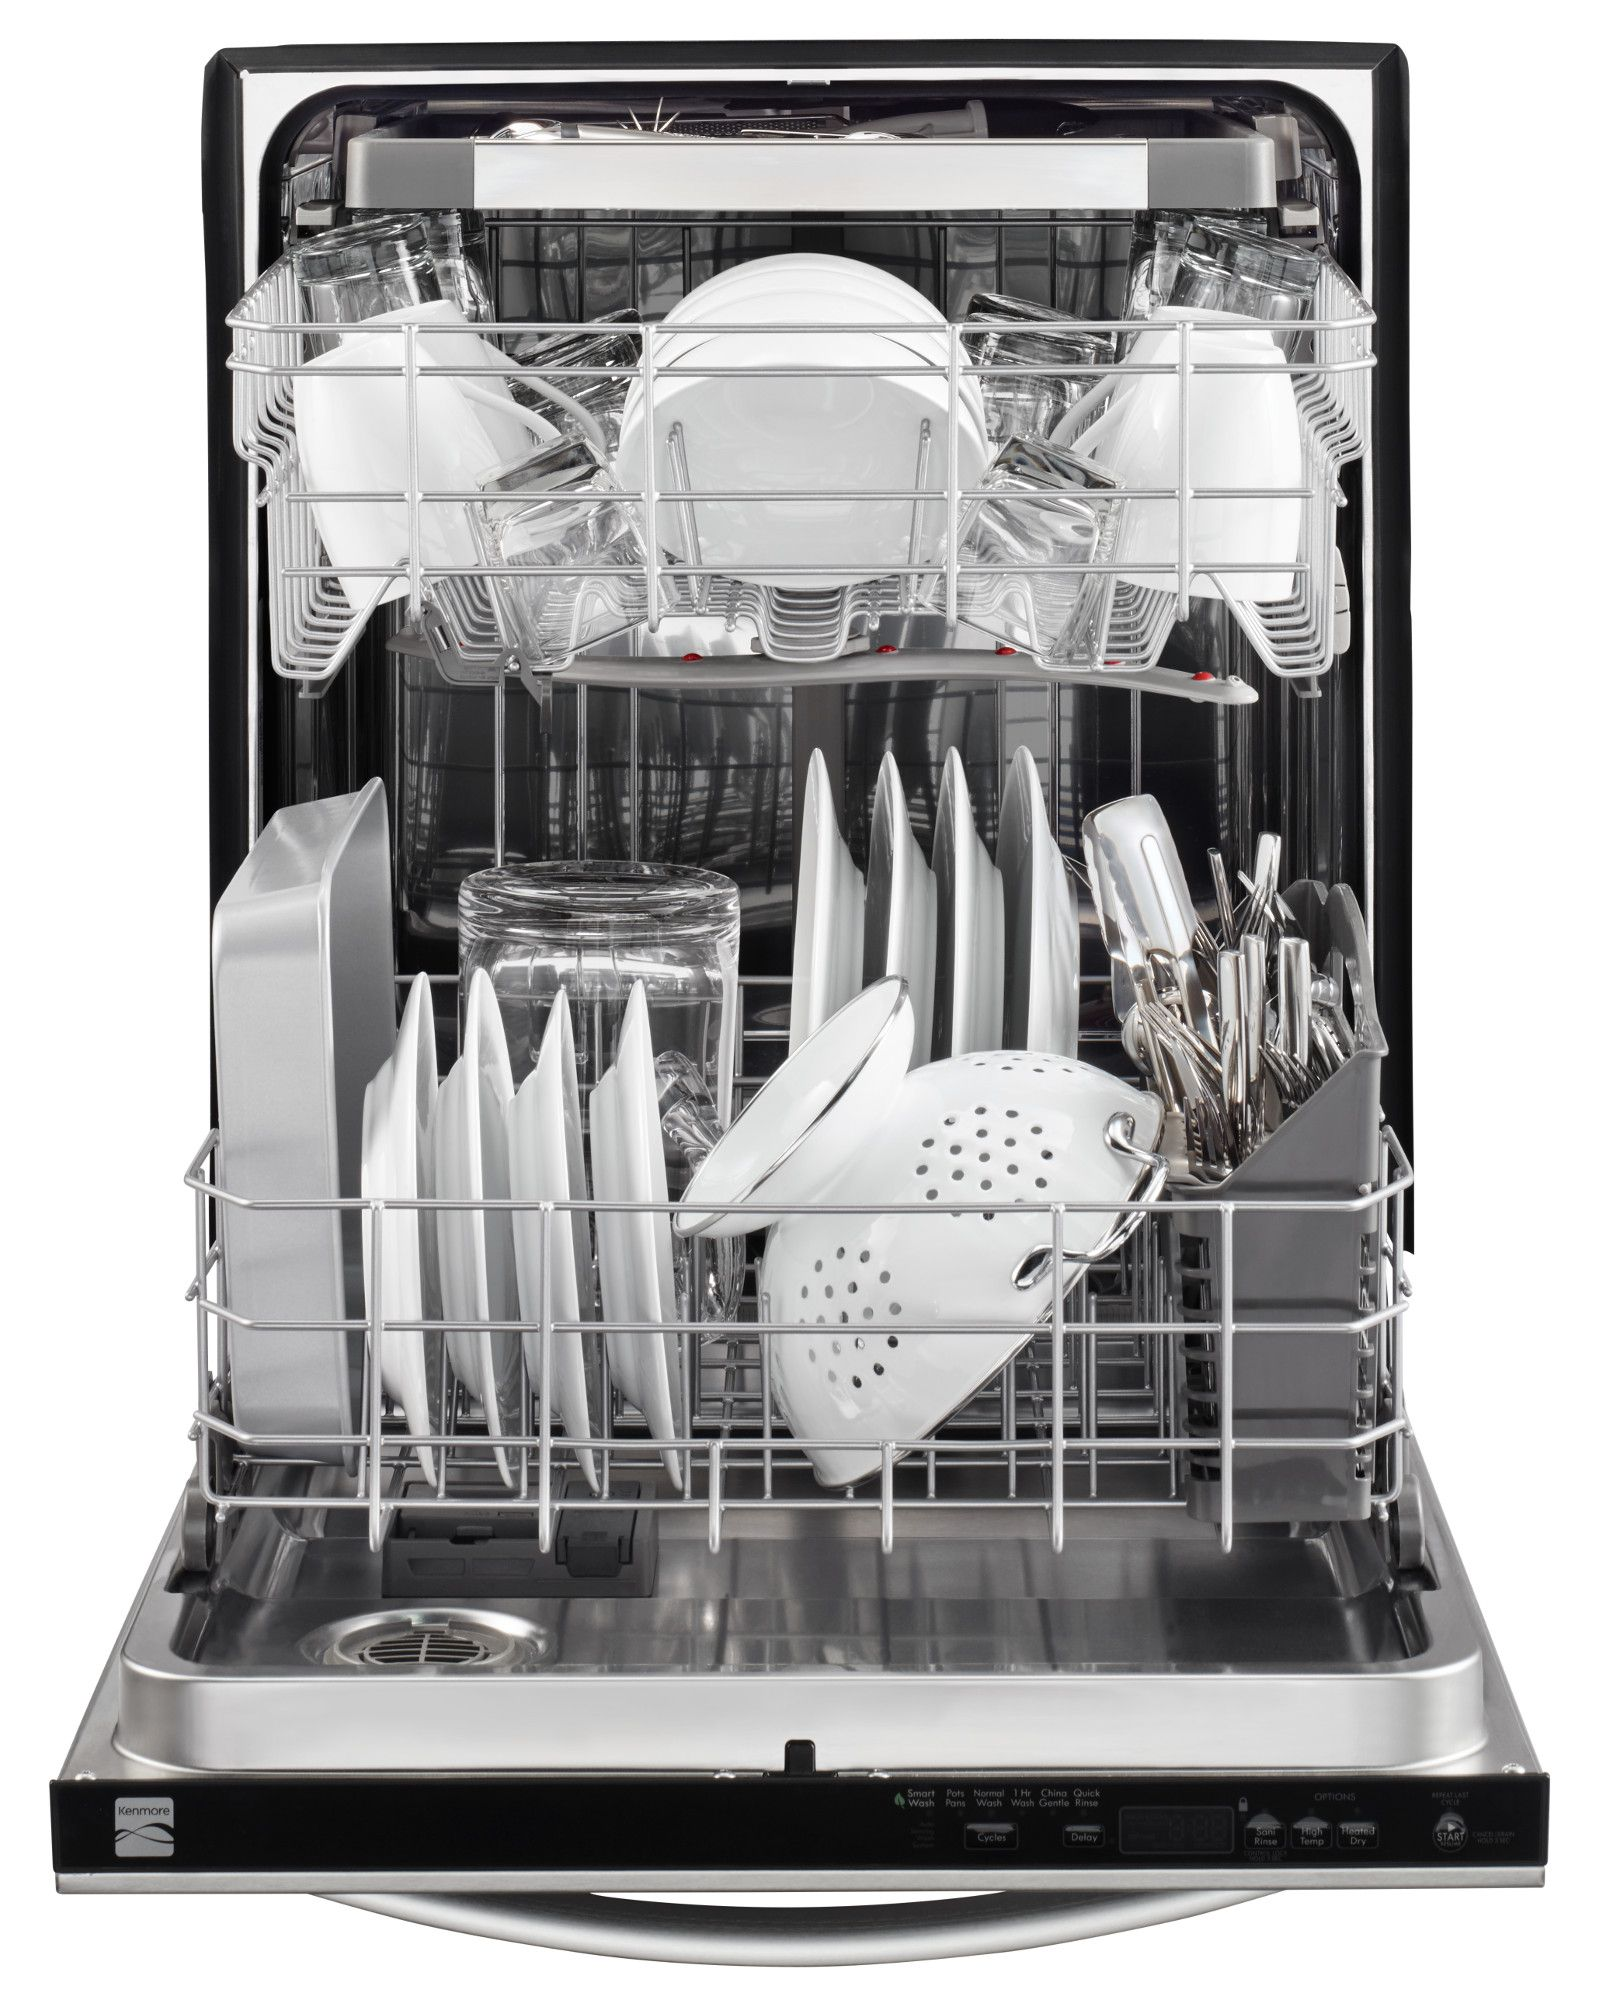 Pin on dishwasher research